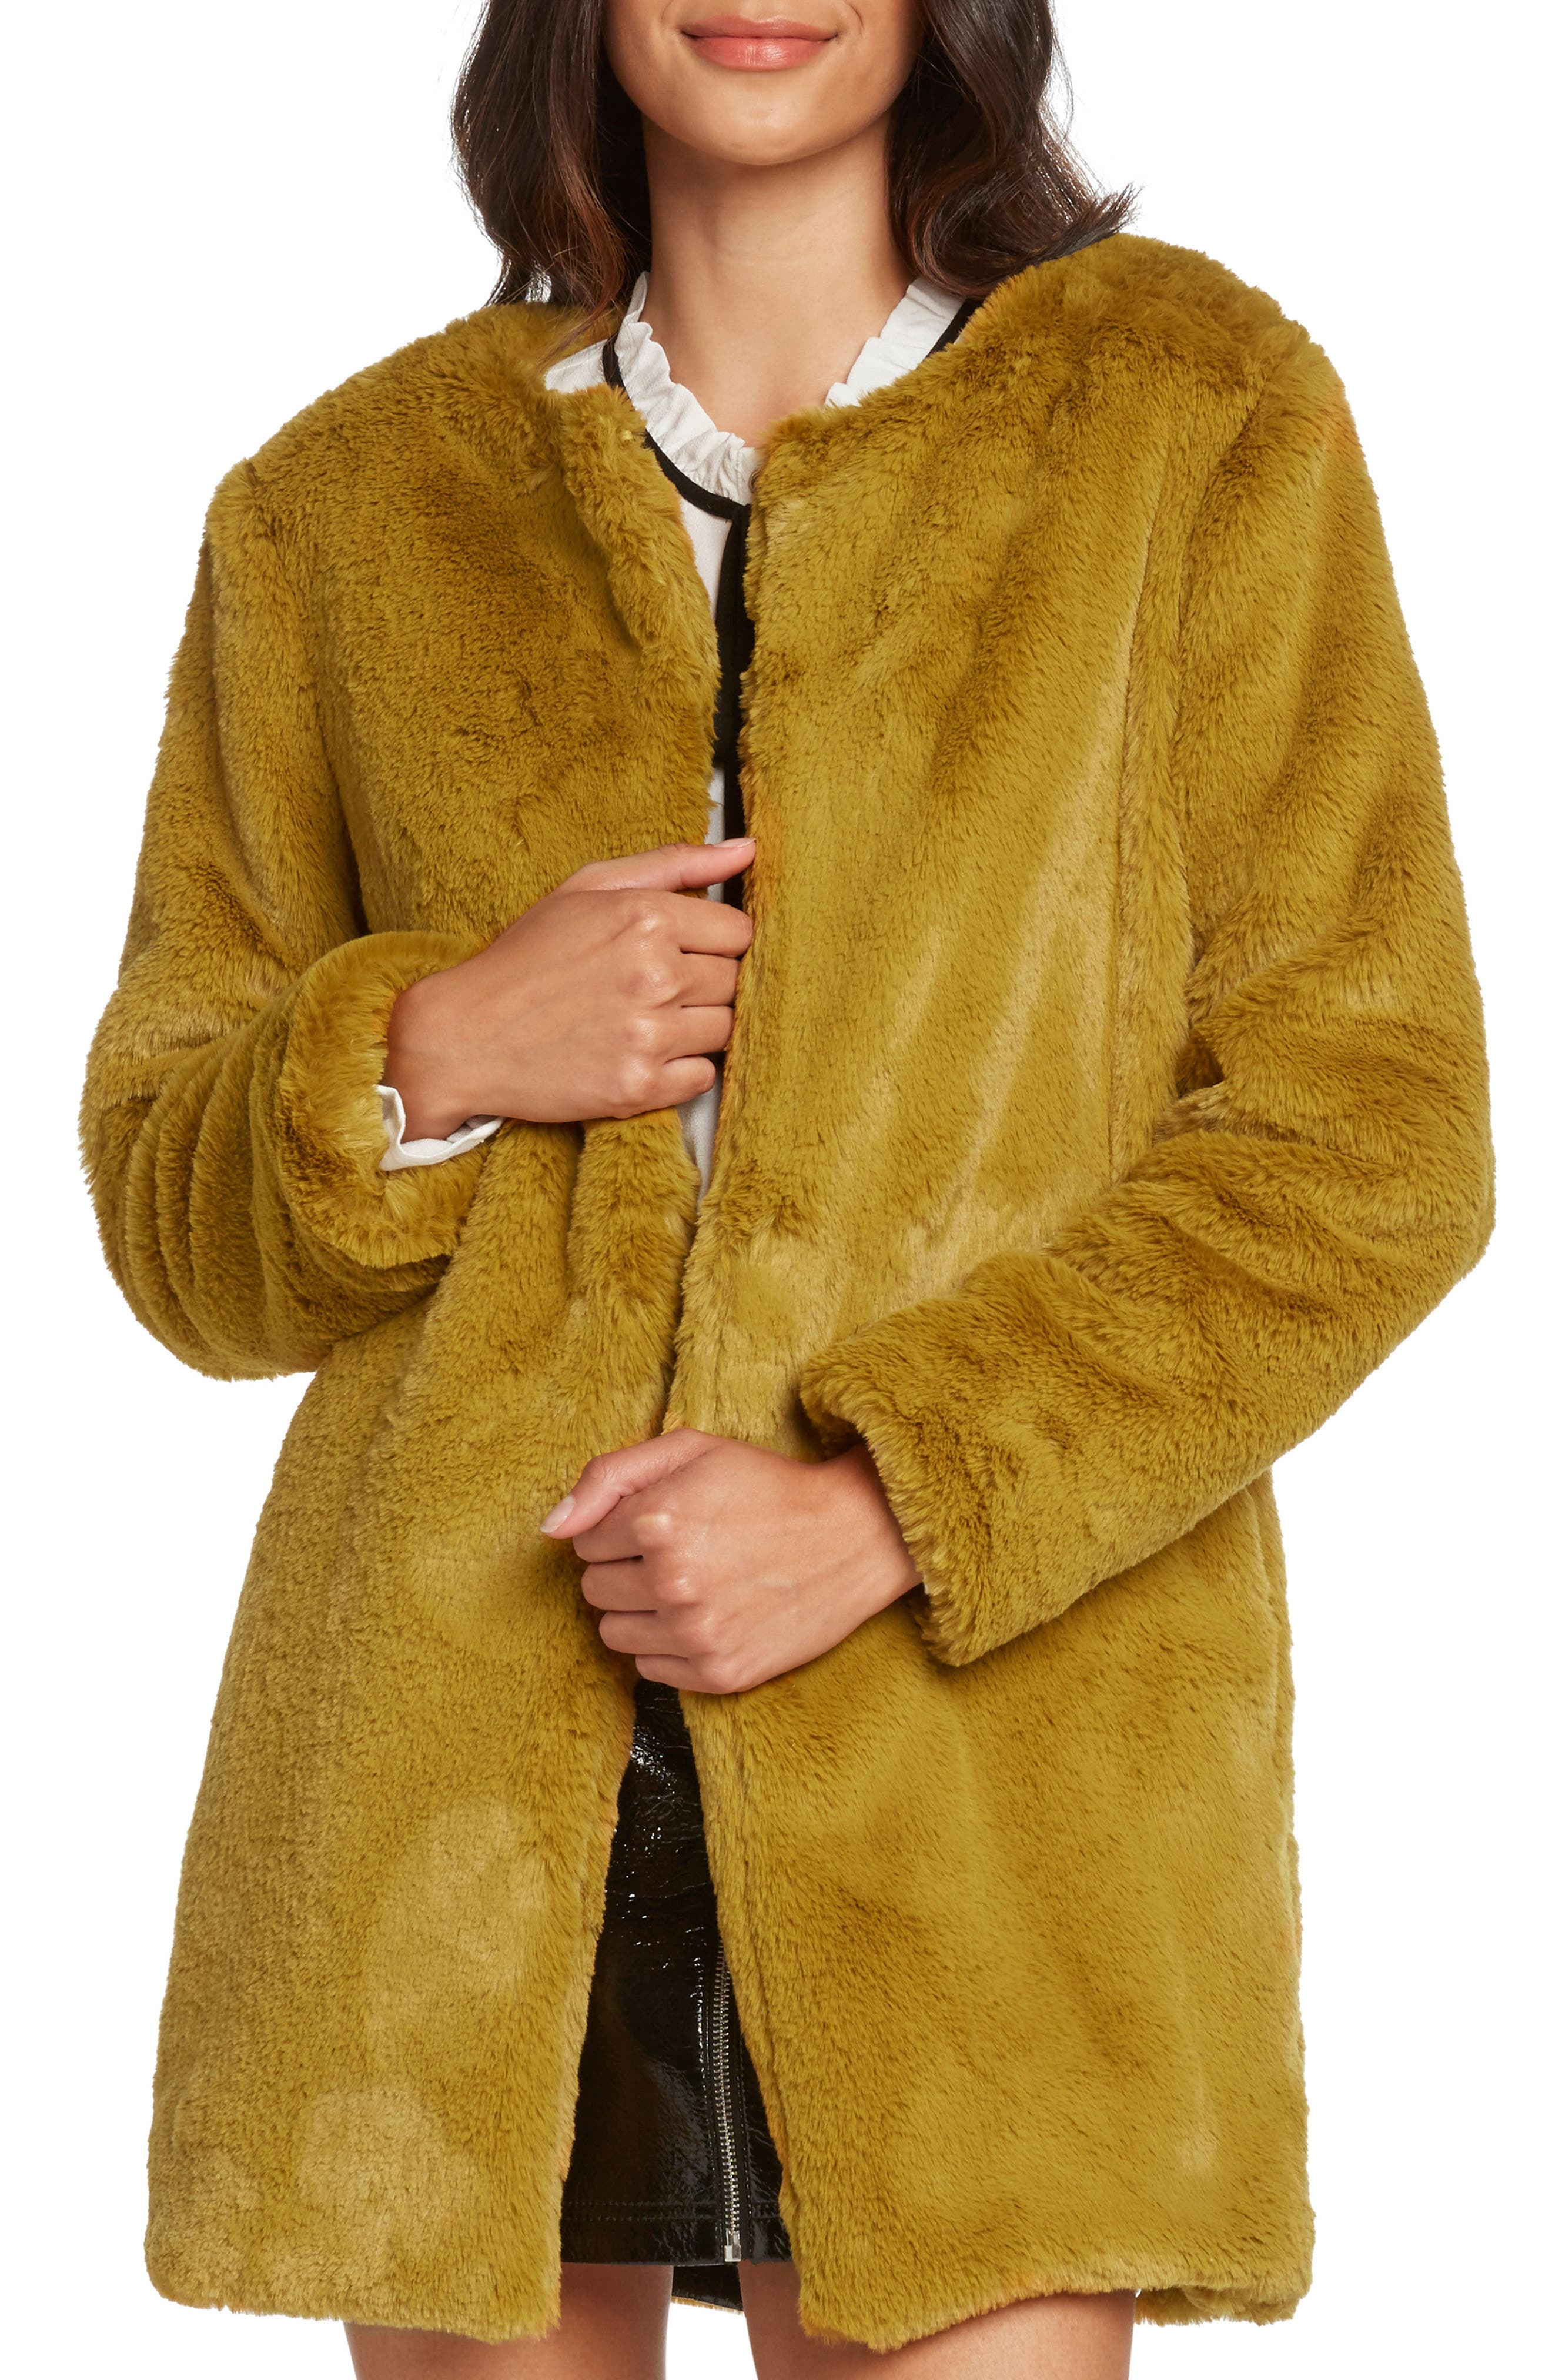 WILLOW & CLAY Faux Fur Jacket in Saffron